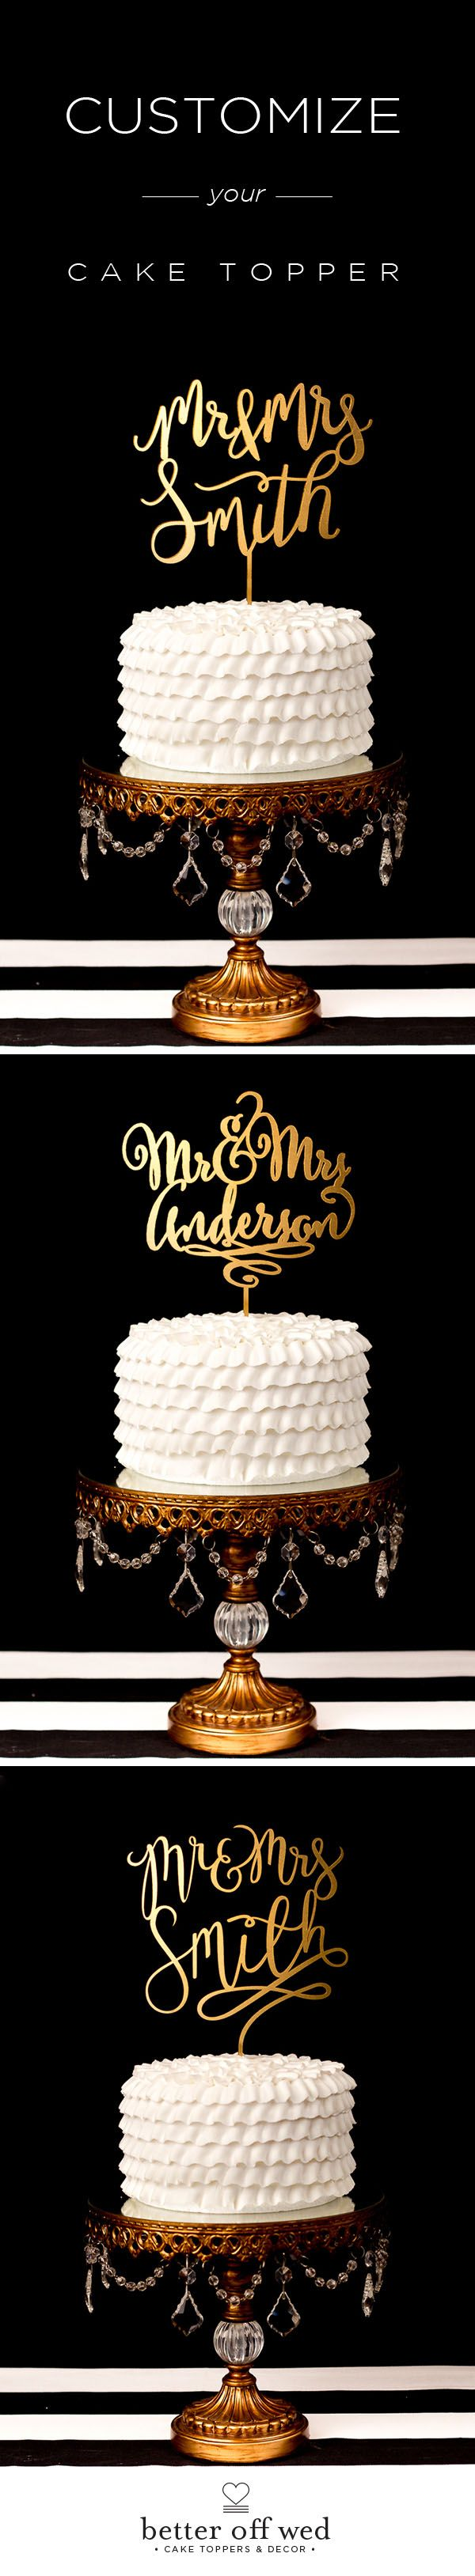 """Even my fiance who doesn't get excited about this stuff really loved this cake topper! We ordered ours in the """"joyful"""" style couldn't be happier ♥ www.betteroffwed.co"""